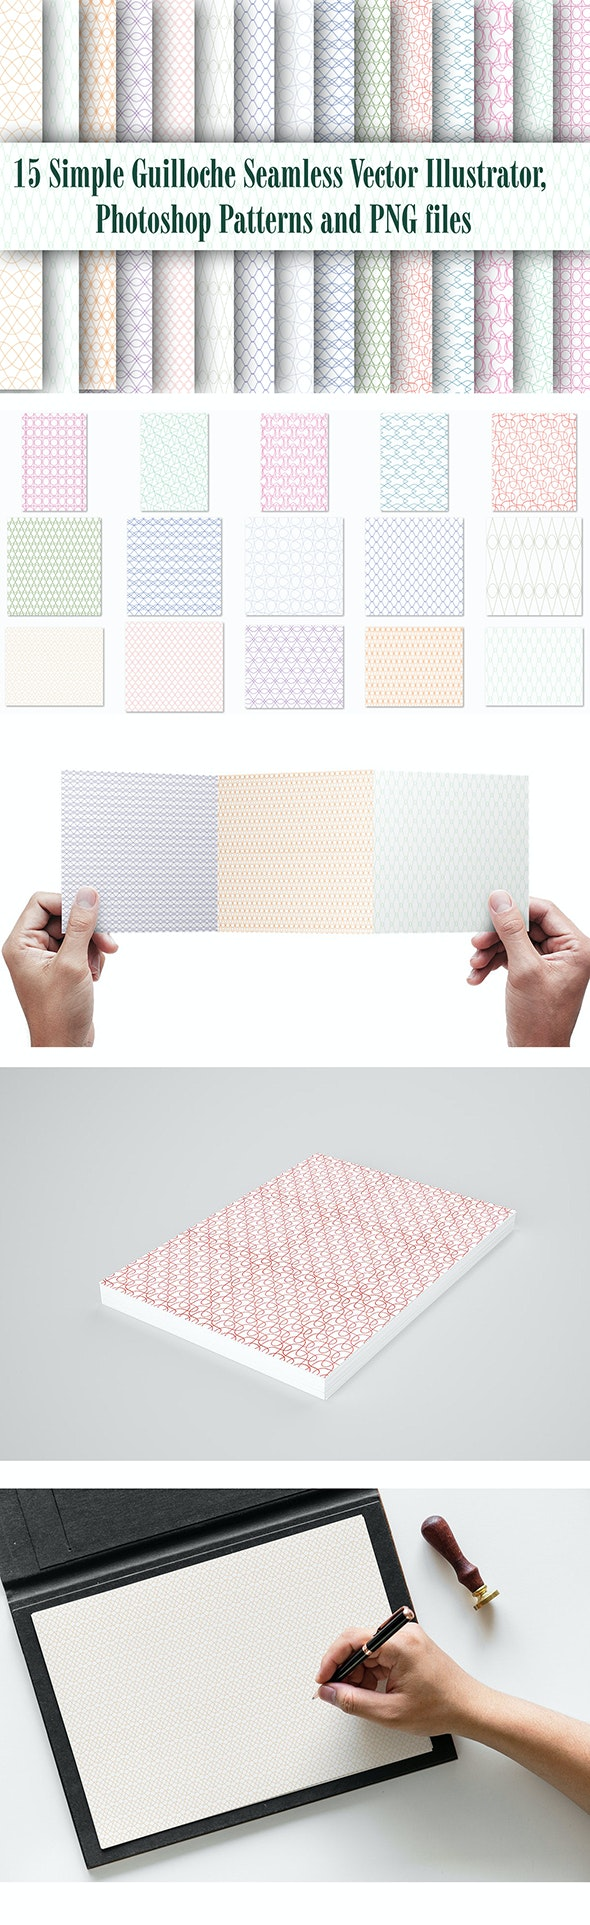 15 Simple Guilloche Seamless Vector Illustrator, Photoshop Patterns and PNG files - Abstract Textures / Fills / Patterns